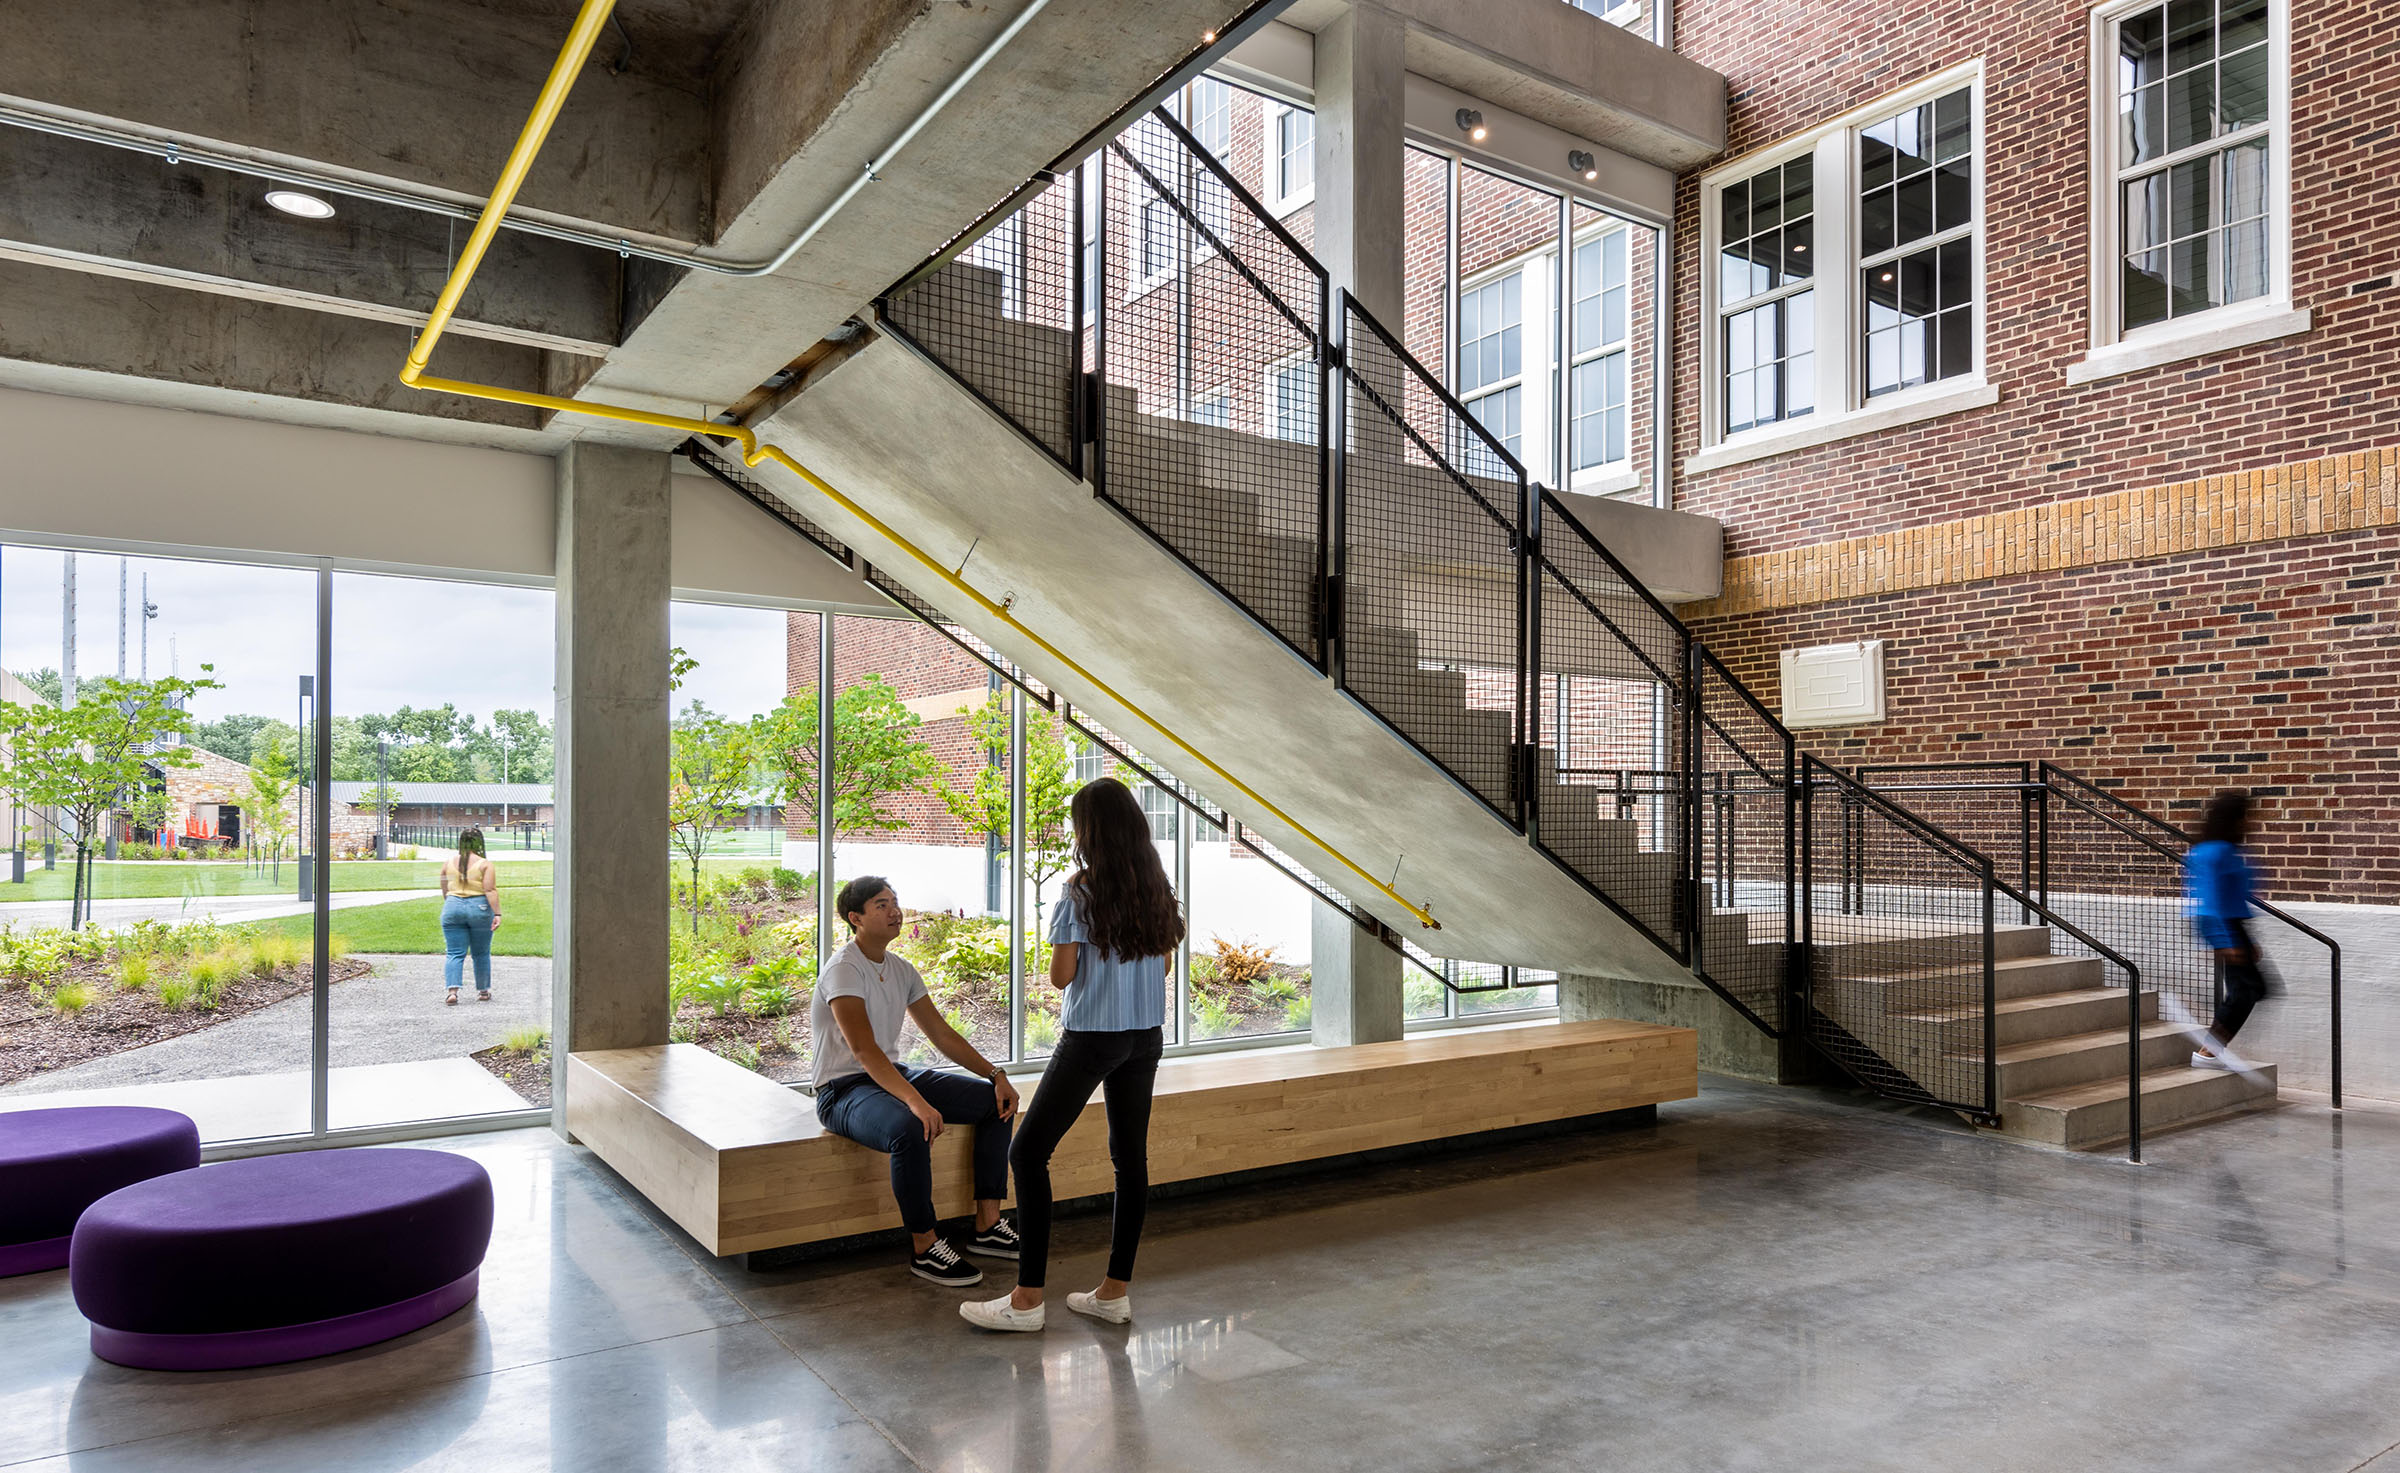 Design for Education + Equity: The Renovation of North Kansas City High School